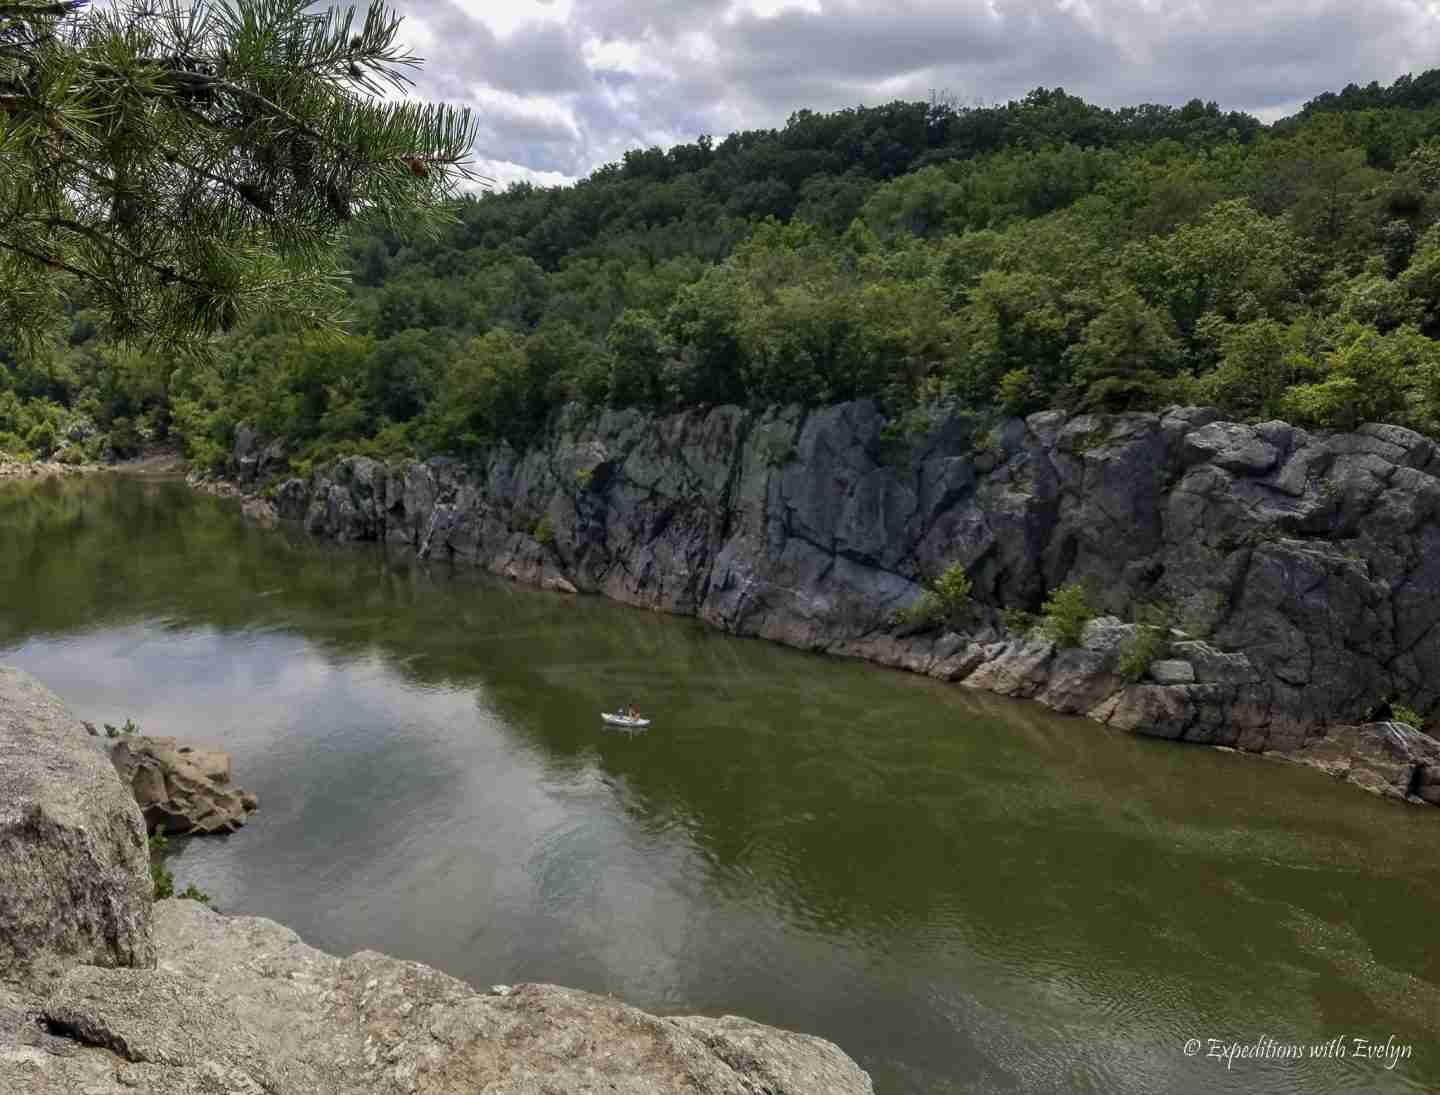 A kayaker exploring outdoors on a river off between rocky gray cliffs on the Billy Goat A Trail in Great Falls Park.